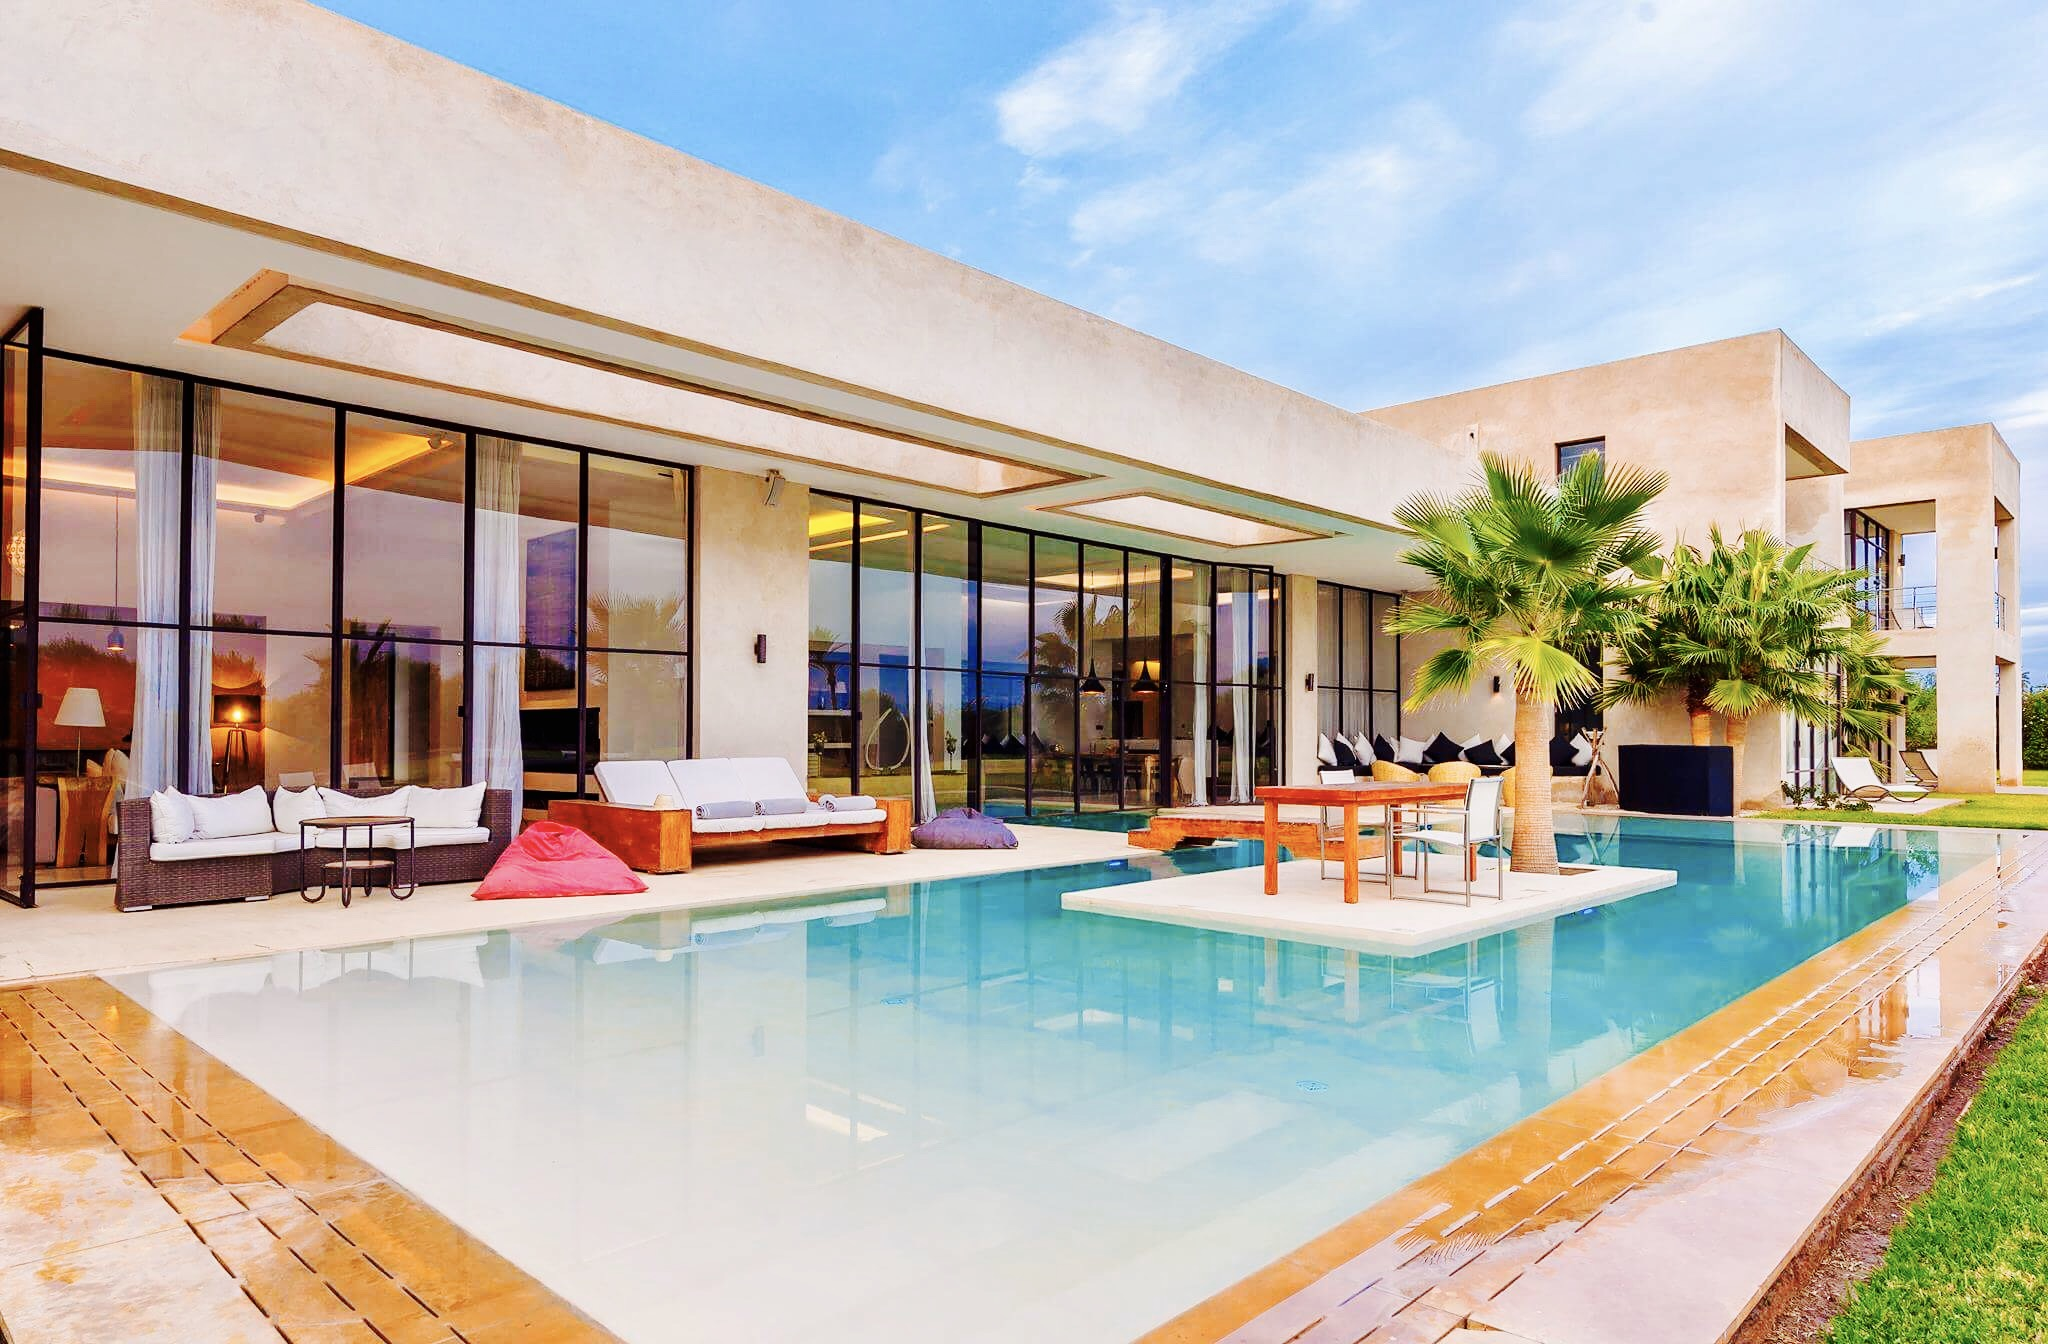 These 4 villas in Morocco will inspire you